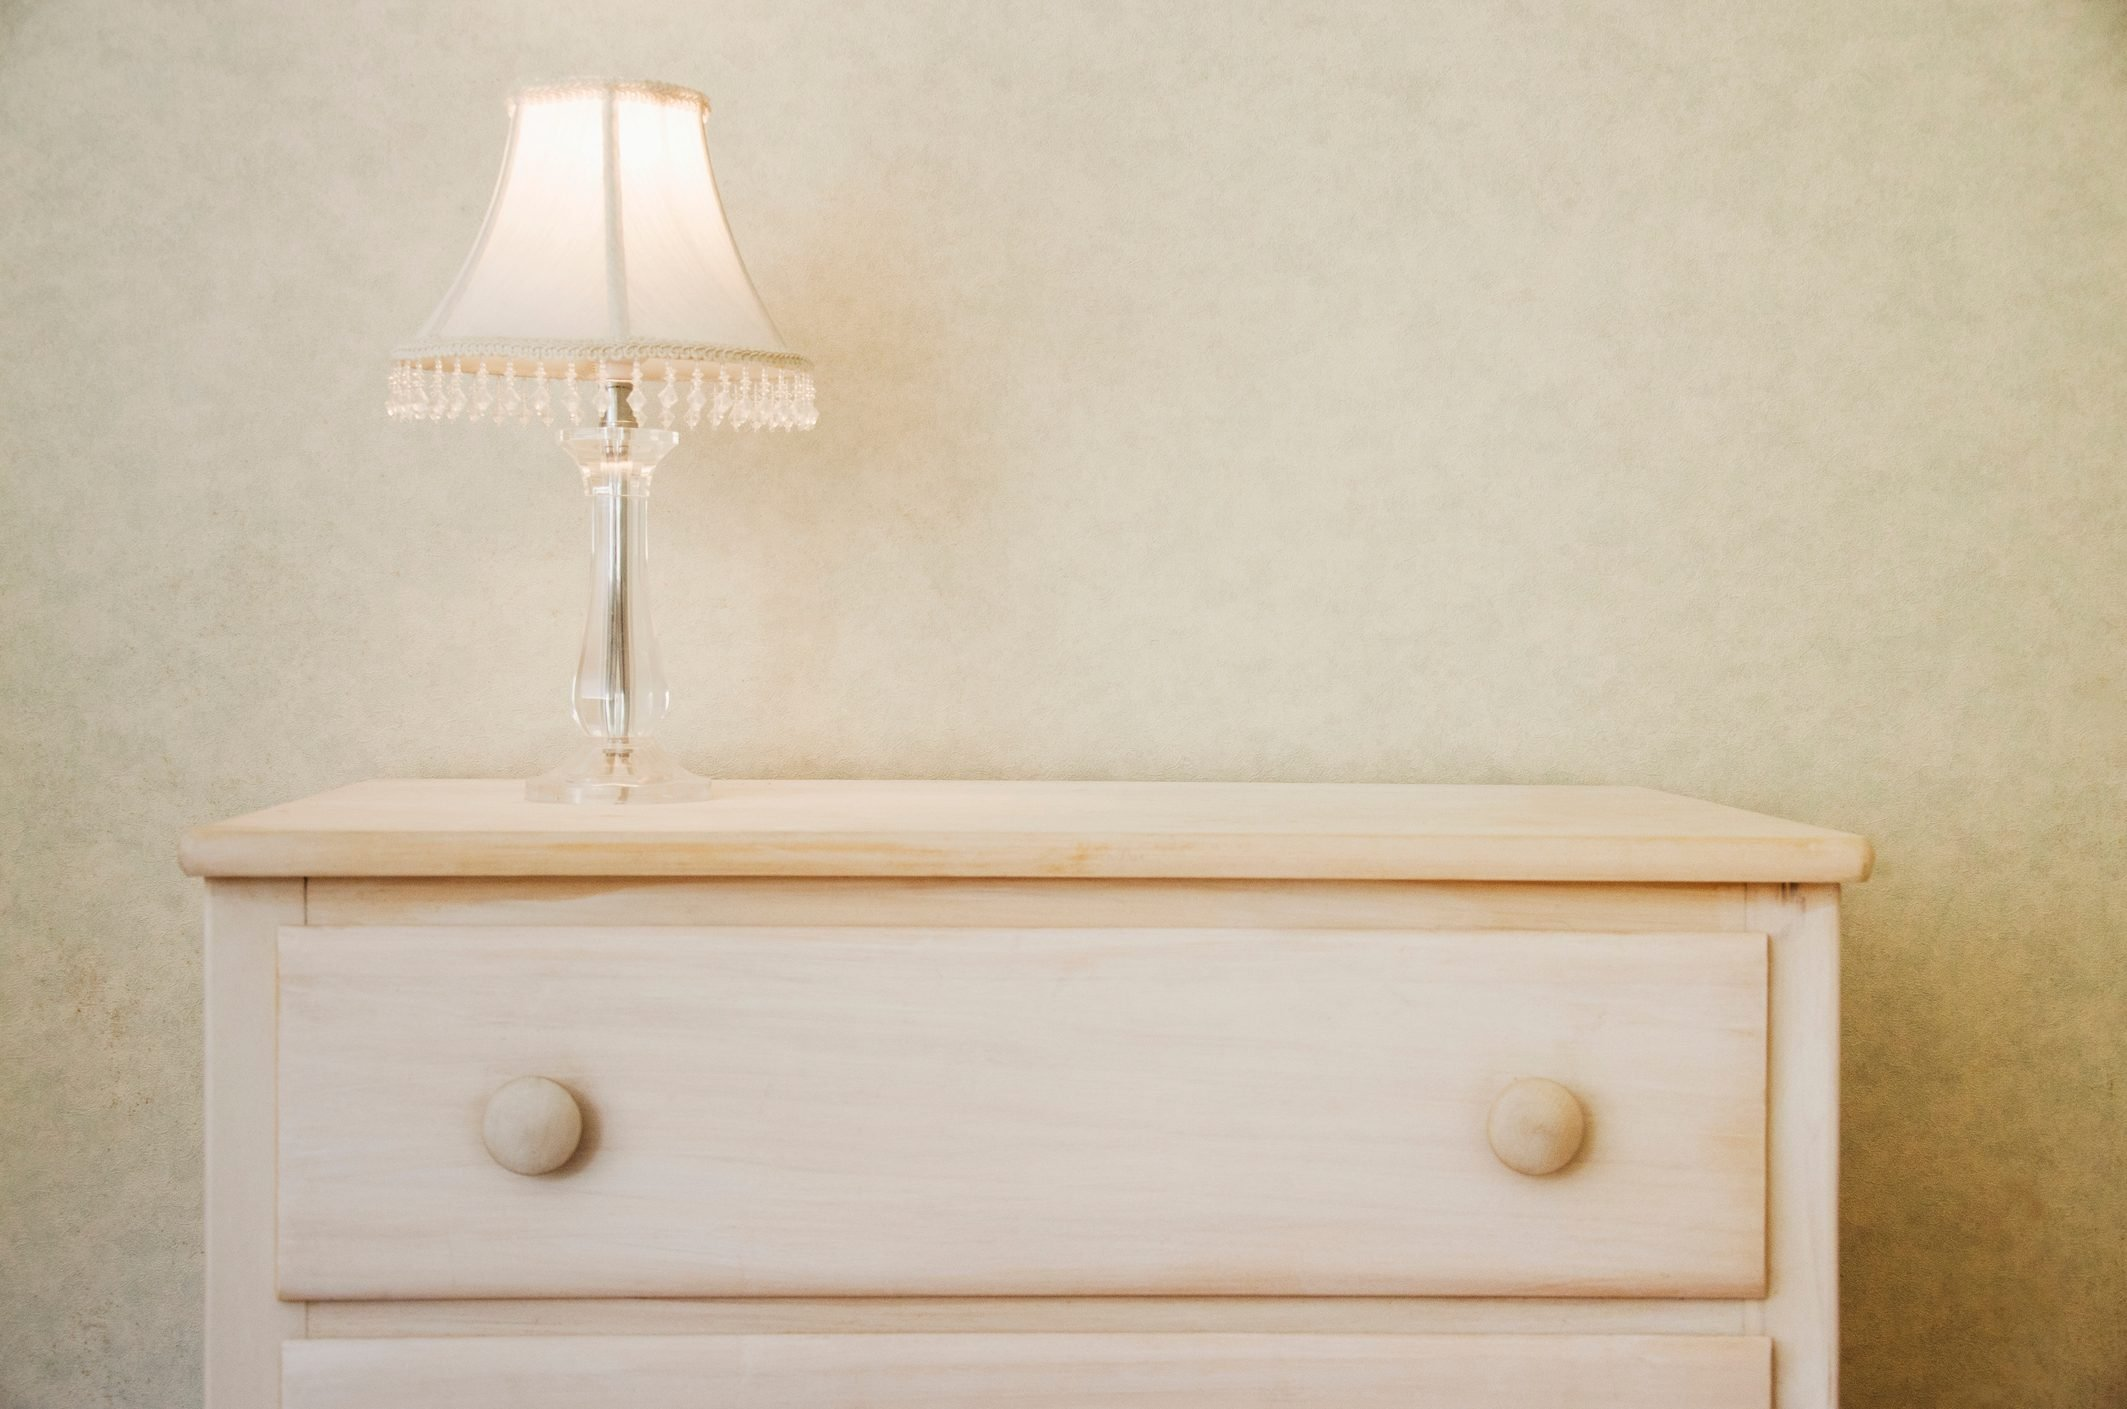 Electric lamp on wooden dresser